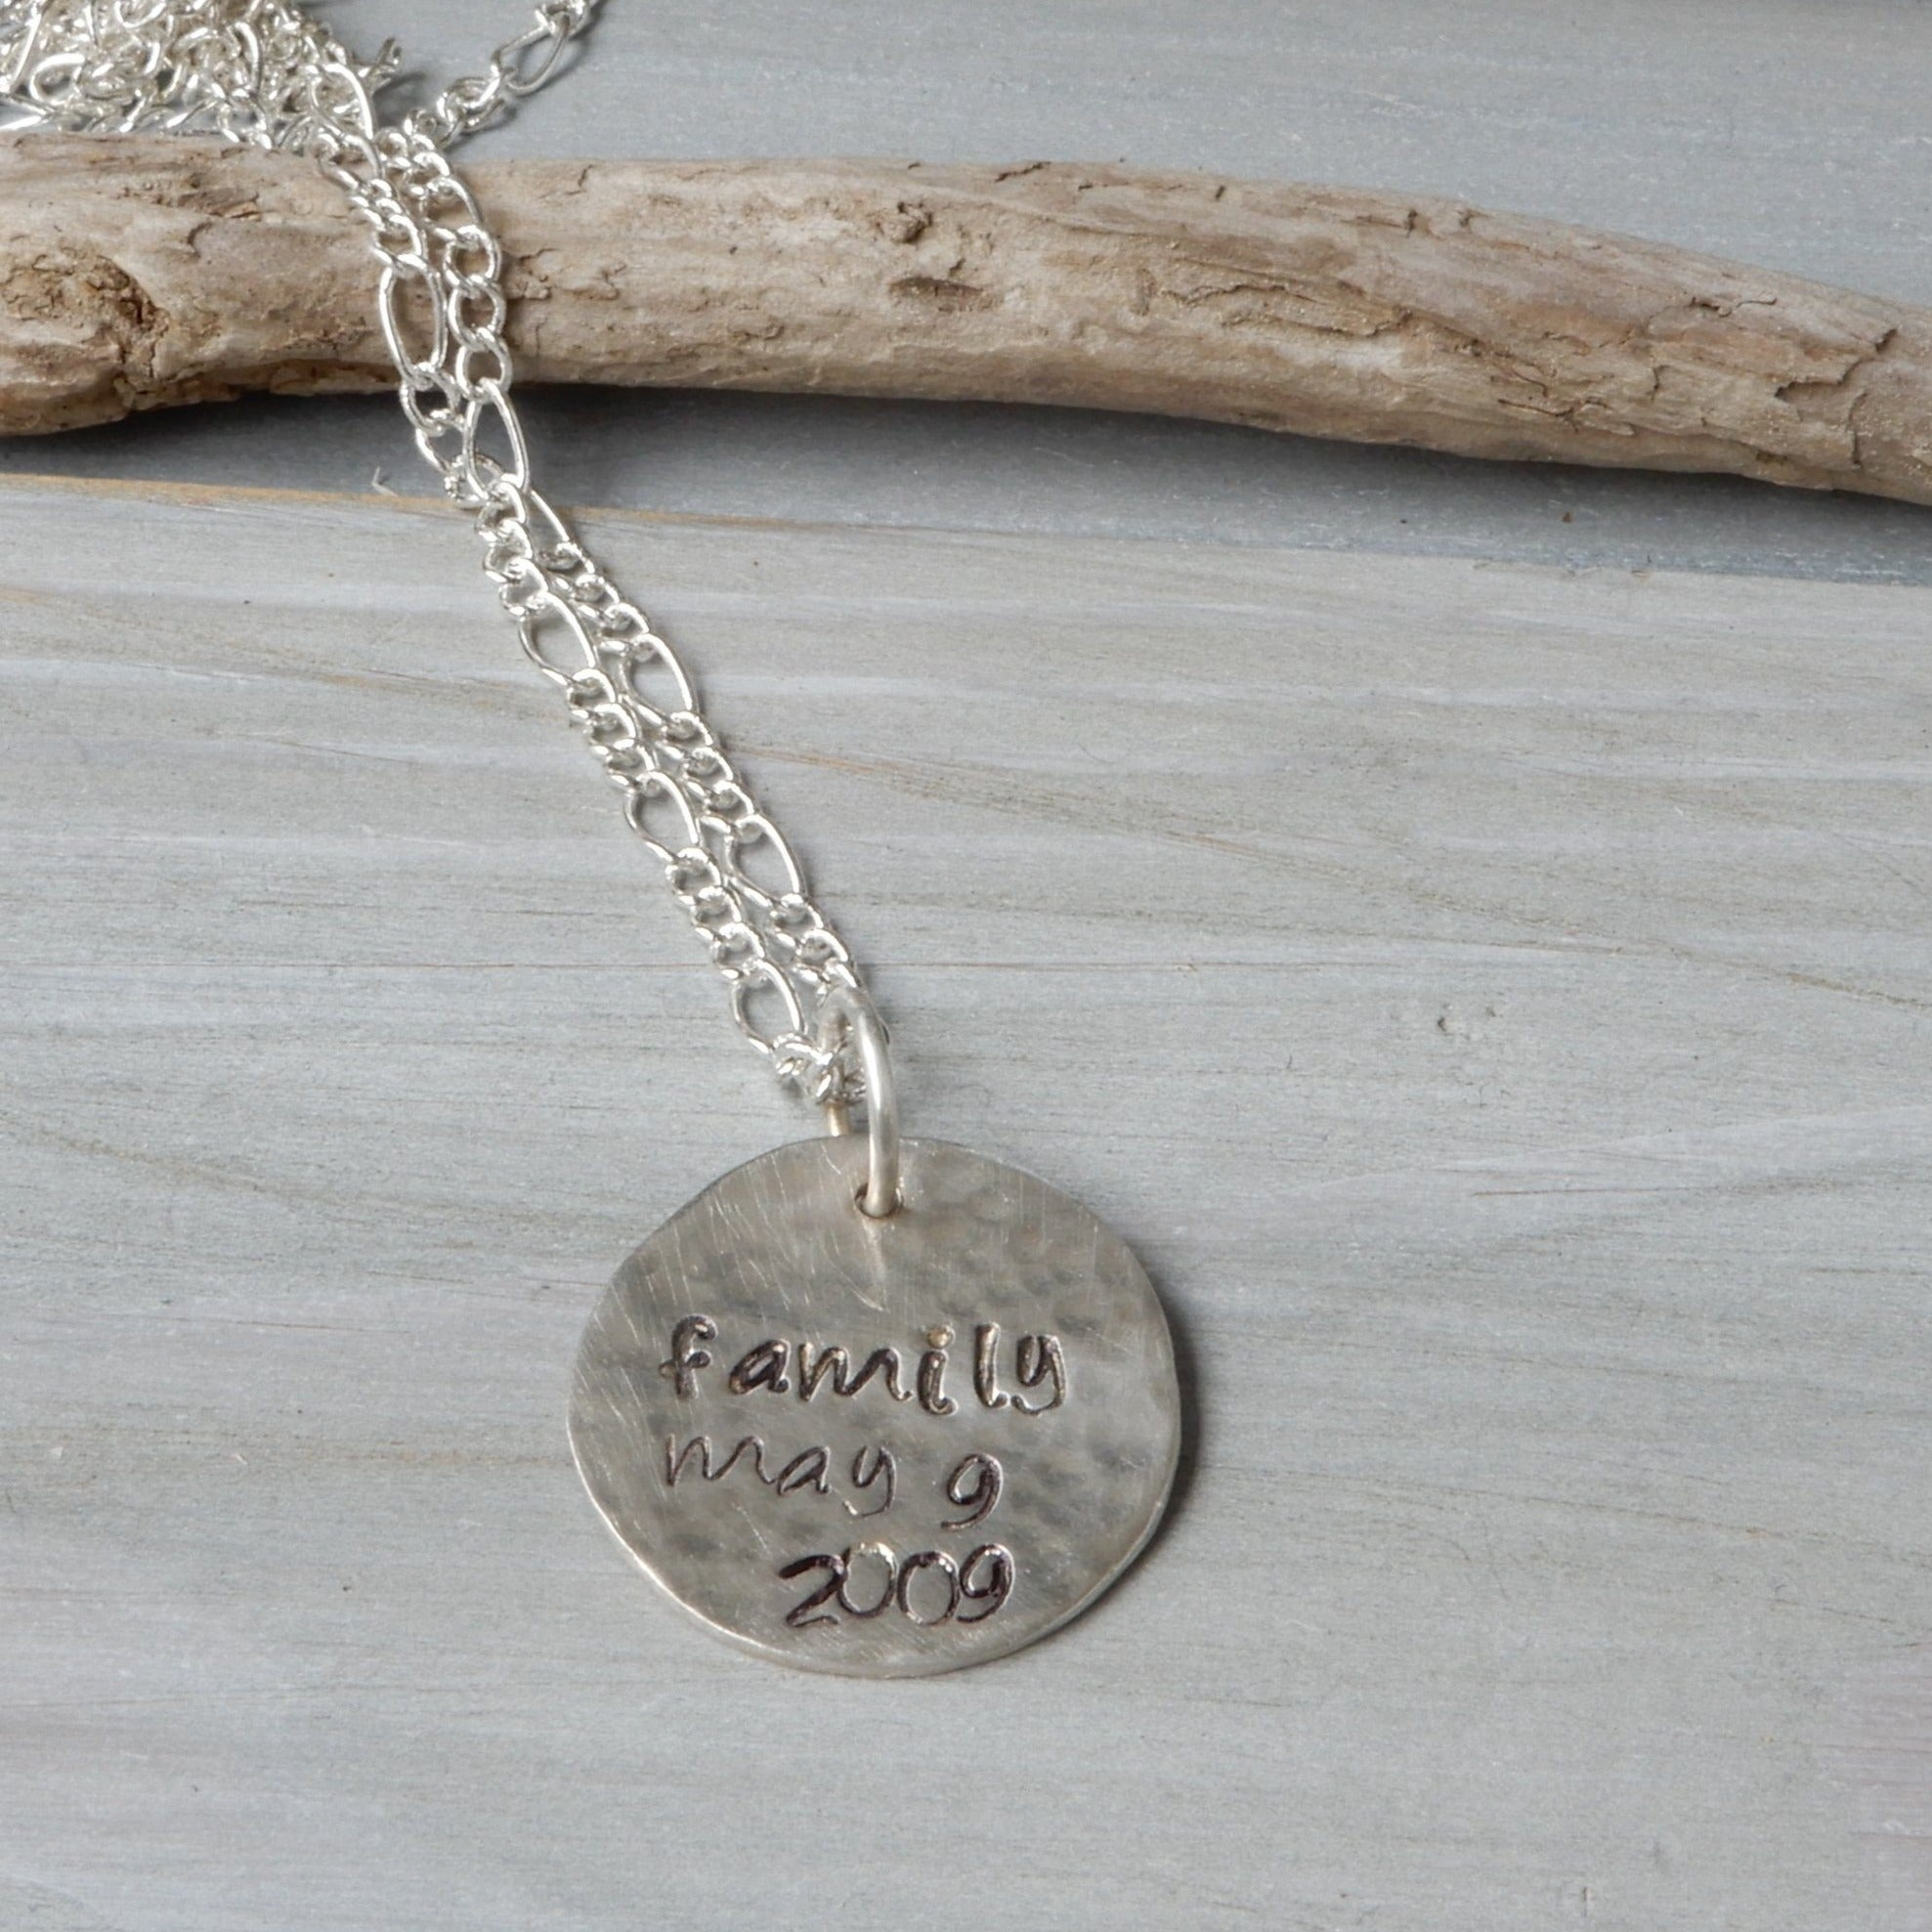 Pendant - Silver Hand Stamped Personalized Necklace Pendant